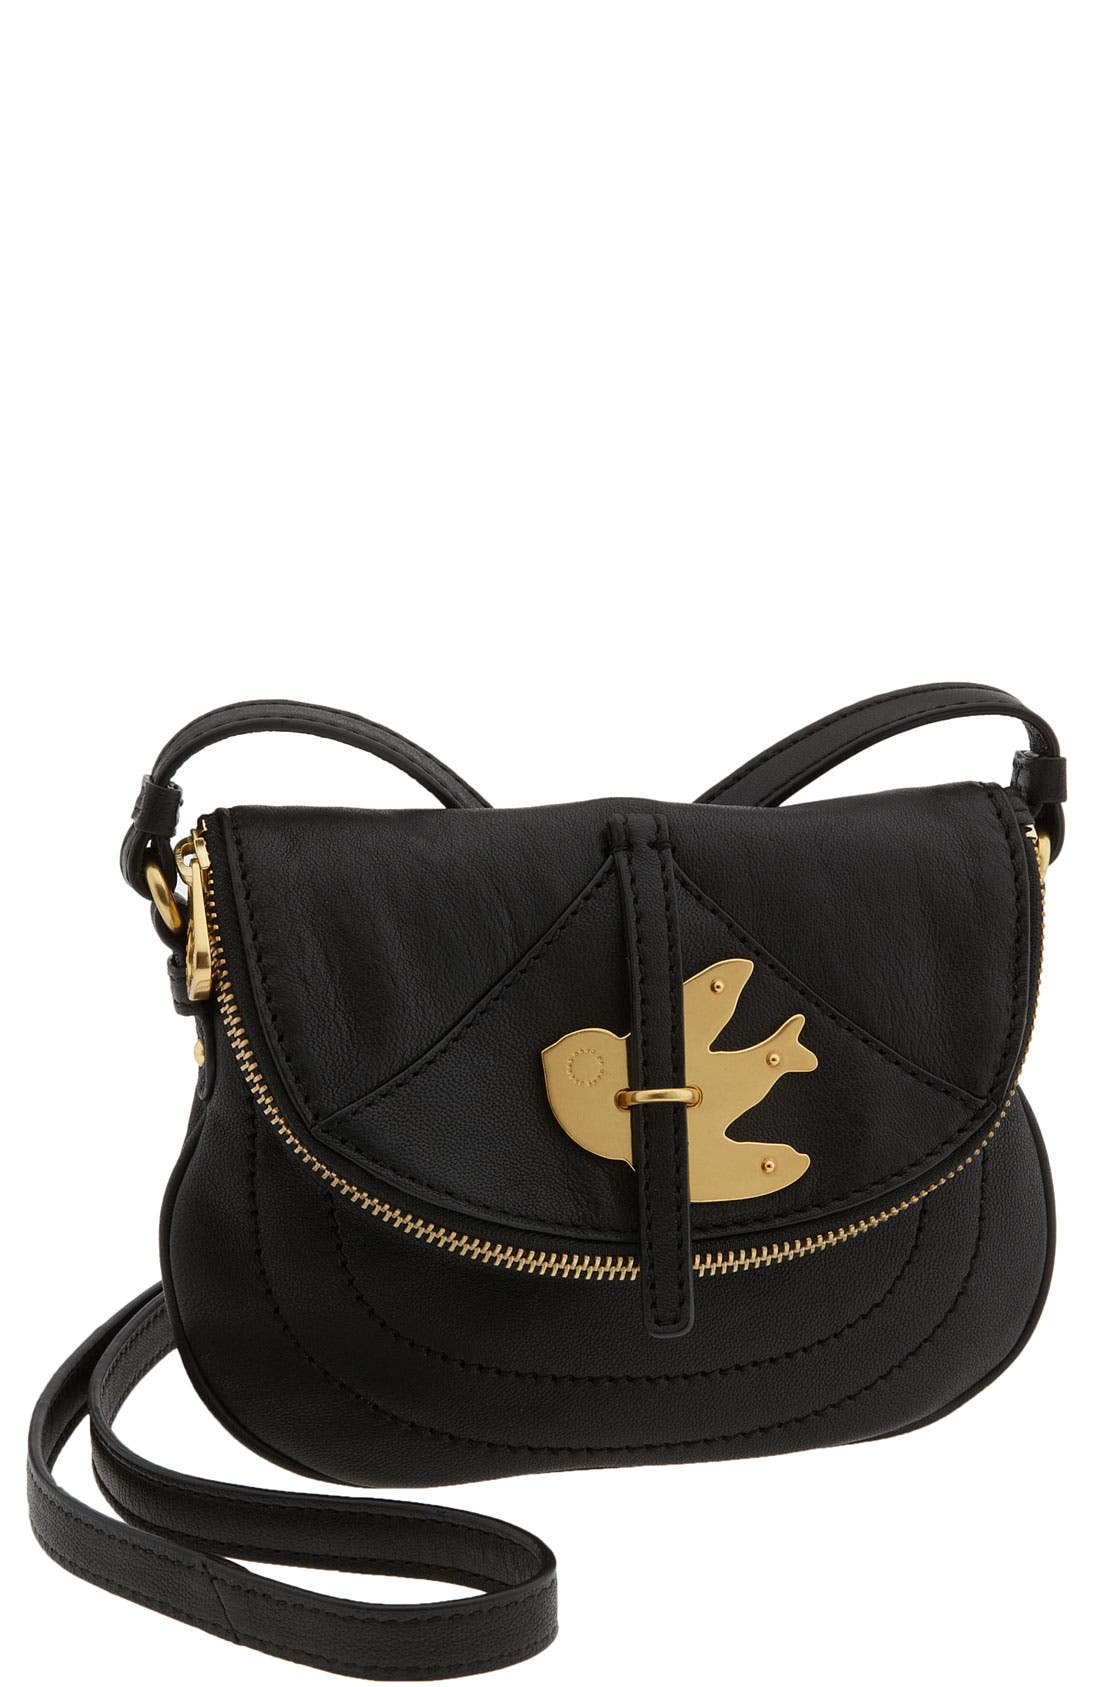 MARC BY MARC JACOBS 'Petal to the Metal' Flap Pouchette,                             Main thumbnail 1, color,                             Black